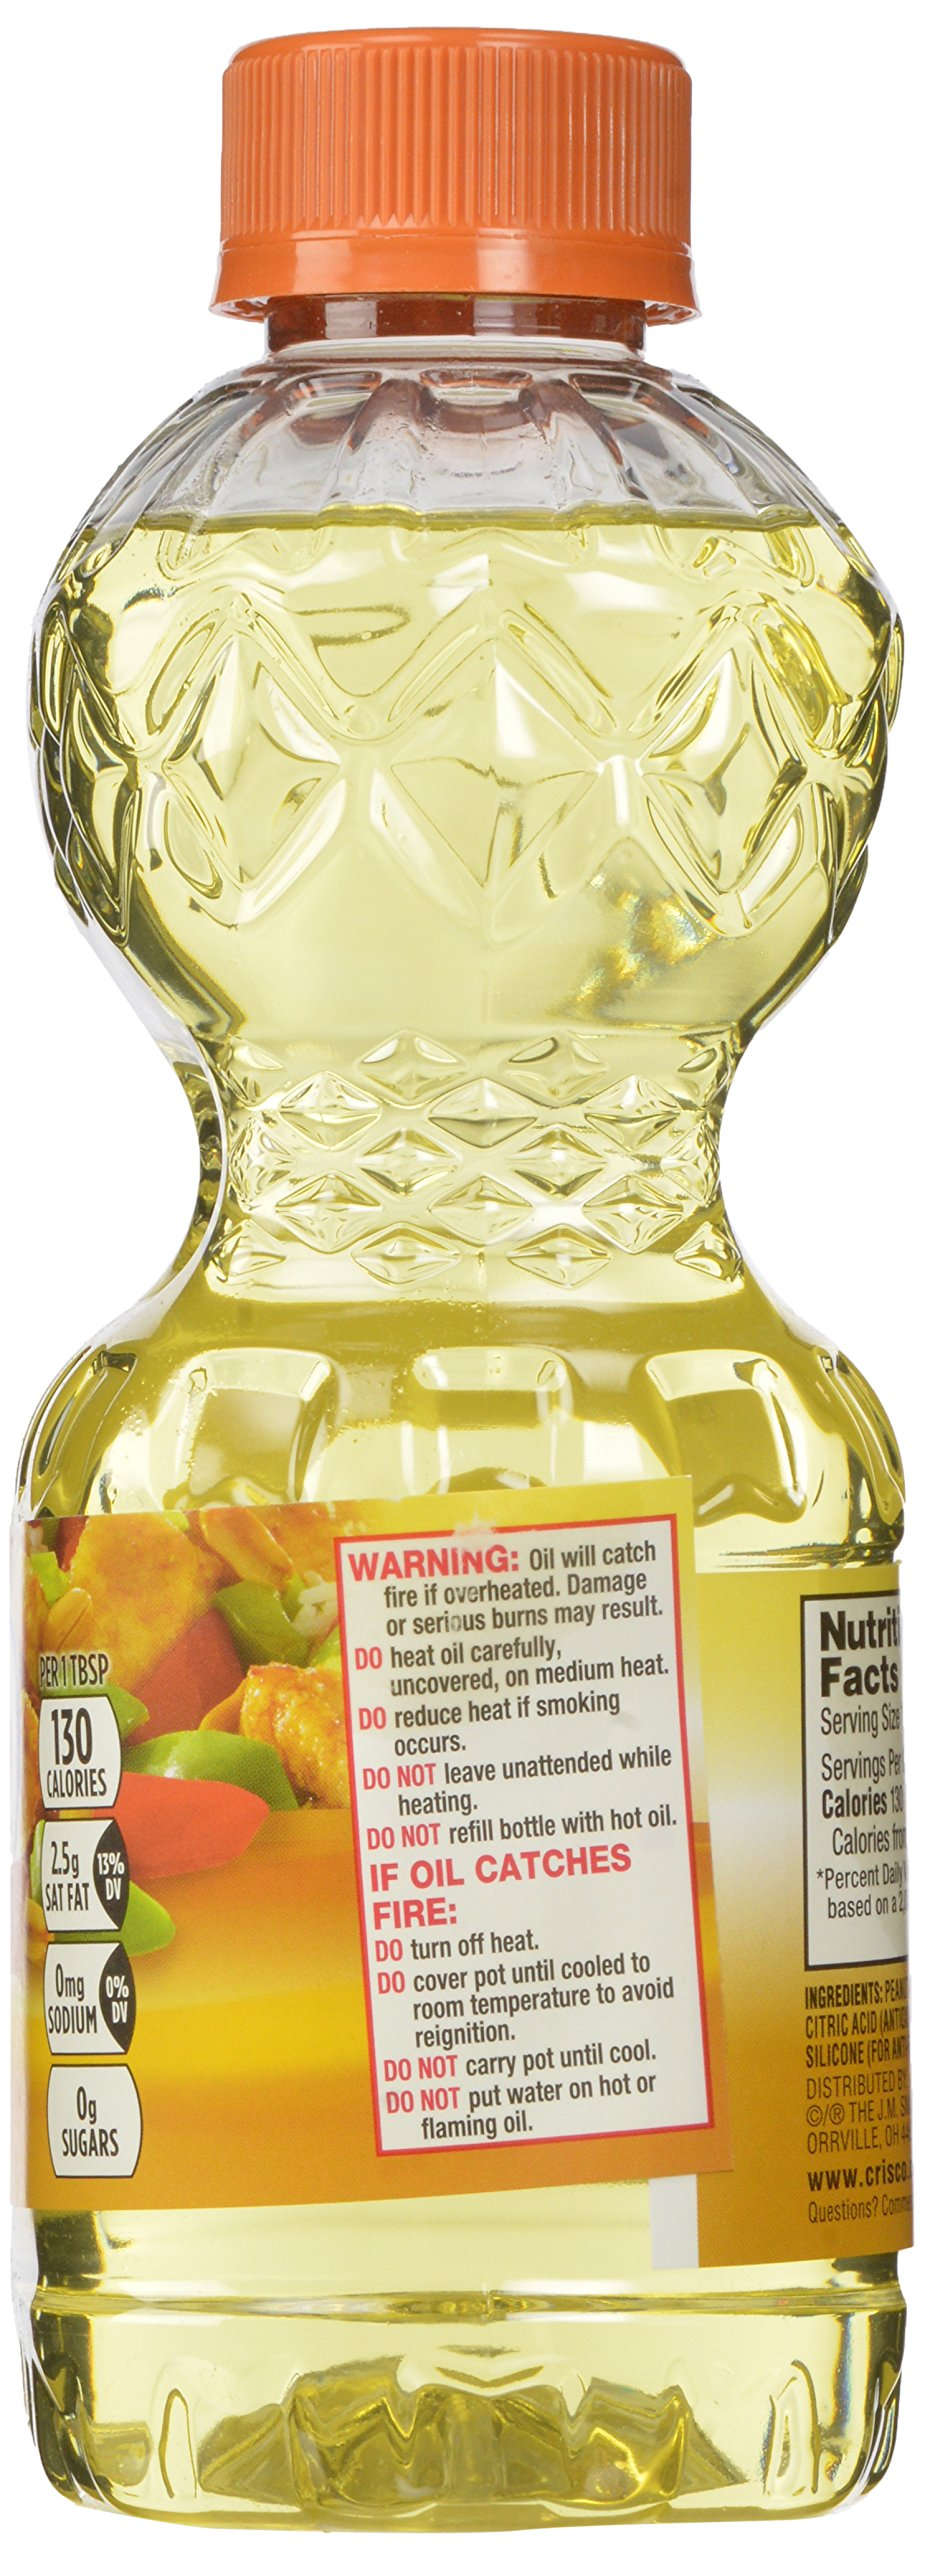 Crisco Pure Peanut Oil, 32 Ounce (Pack of 9) by Crisco (Image #5)